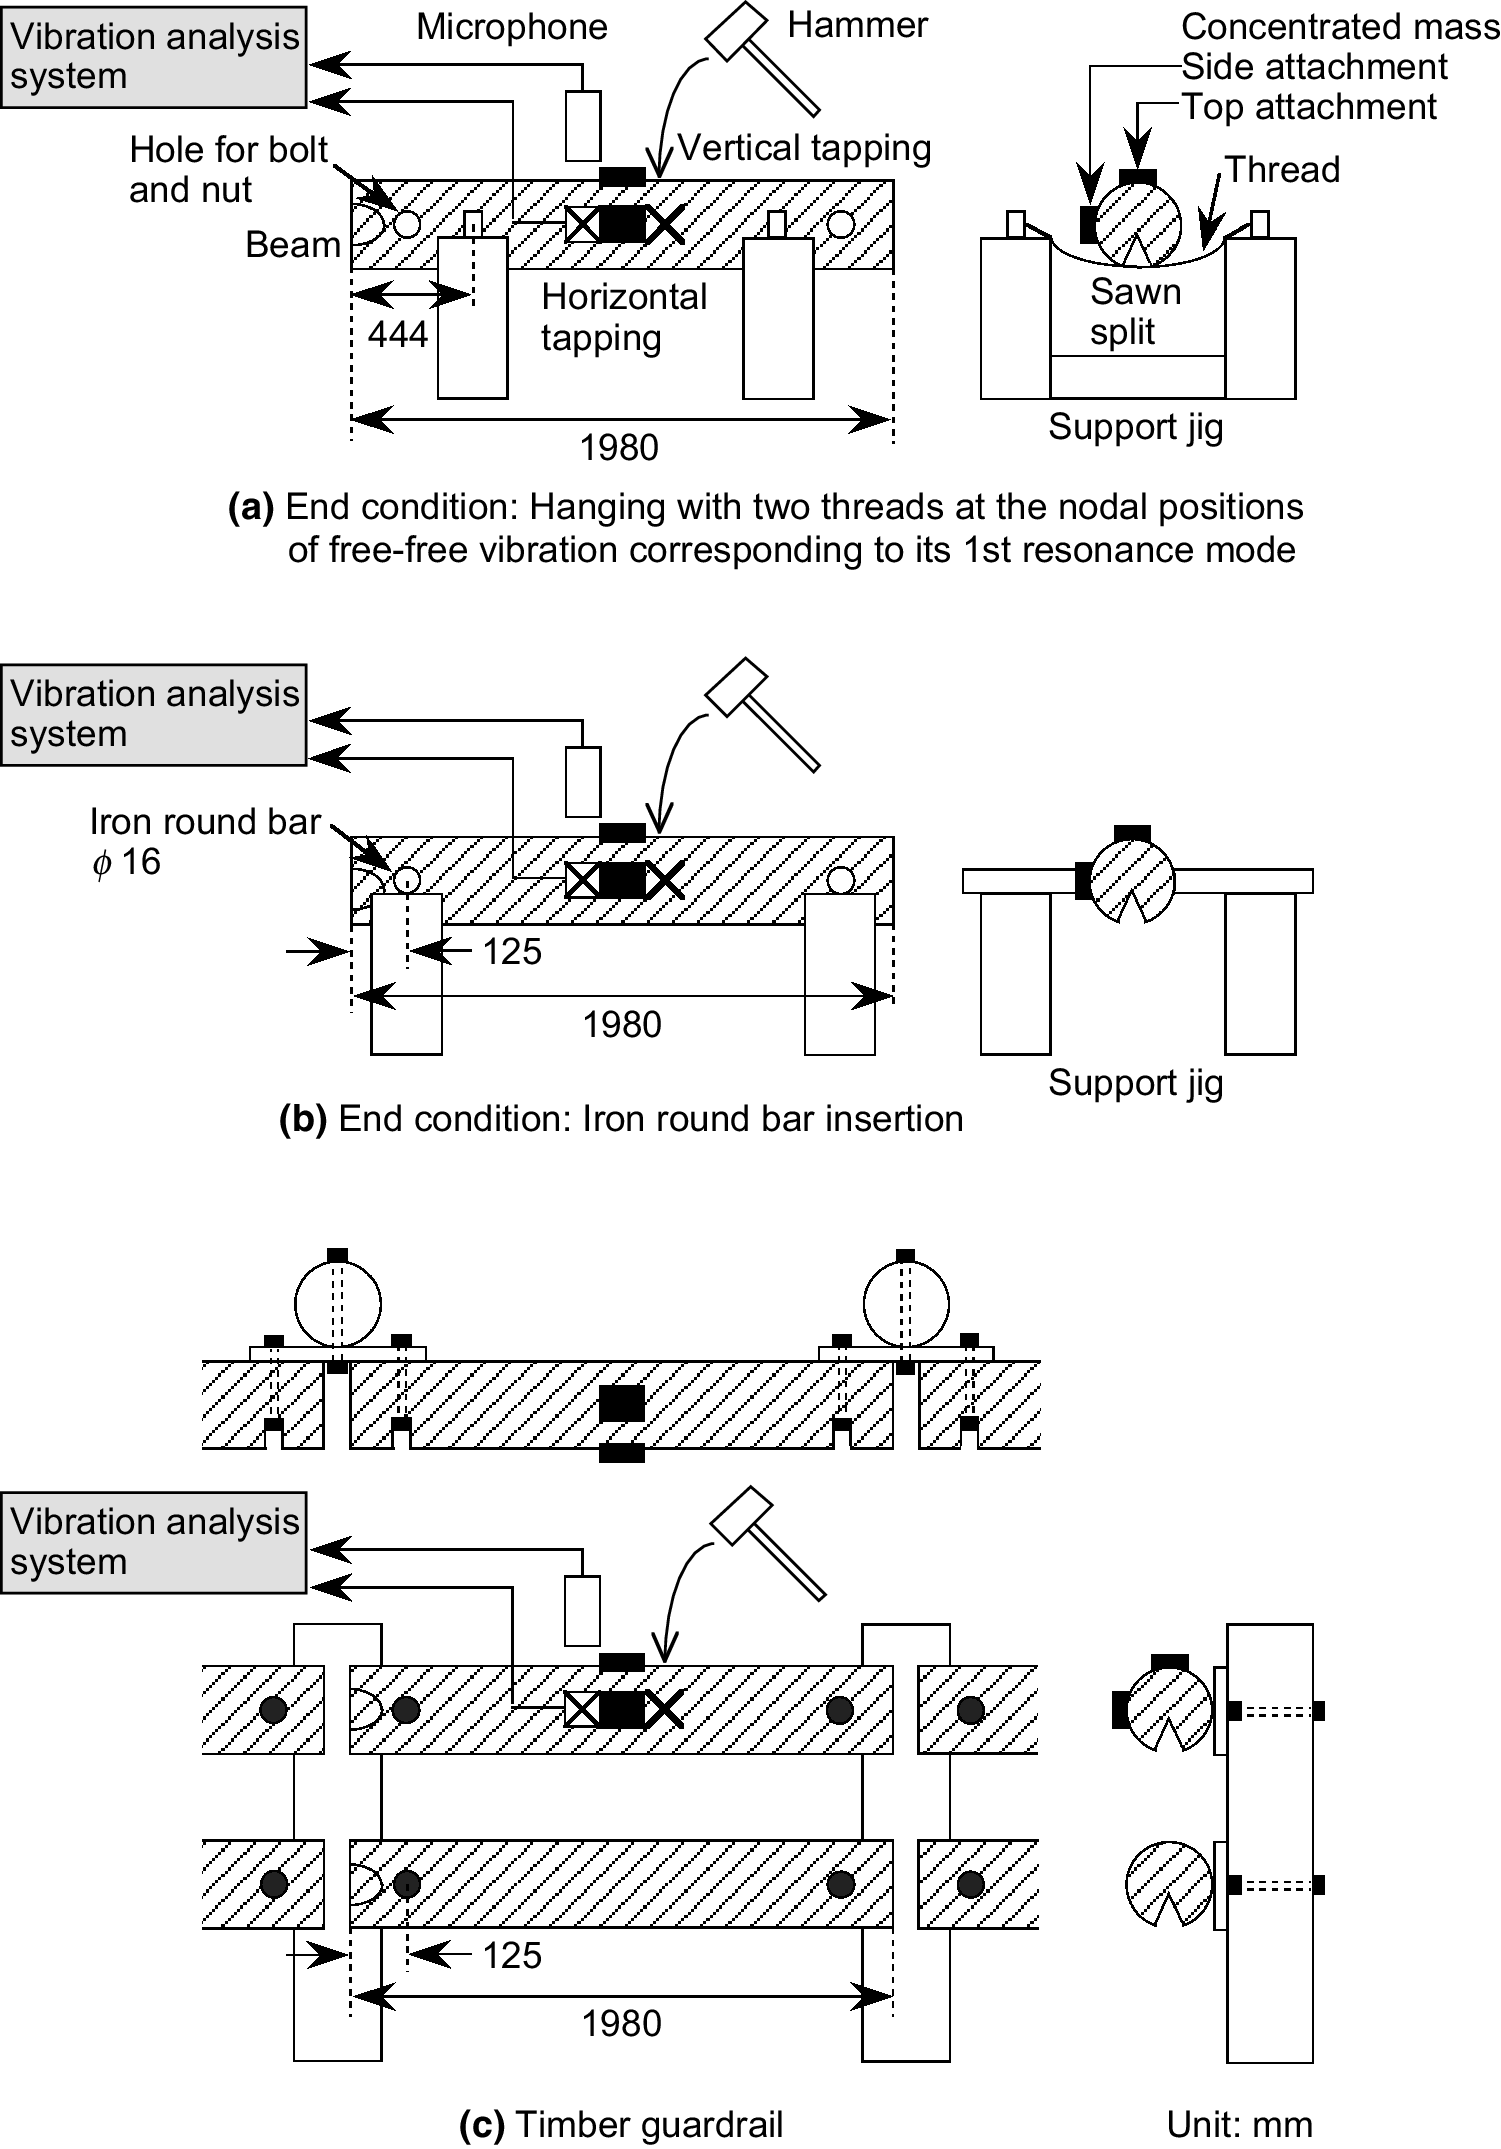 Application of the vibration method with additional mass to